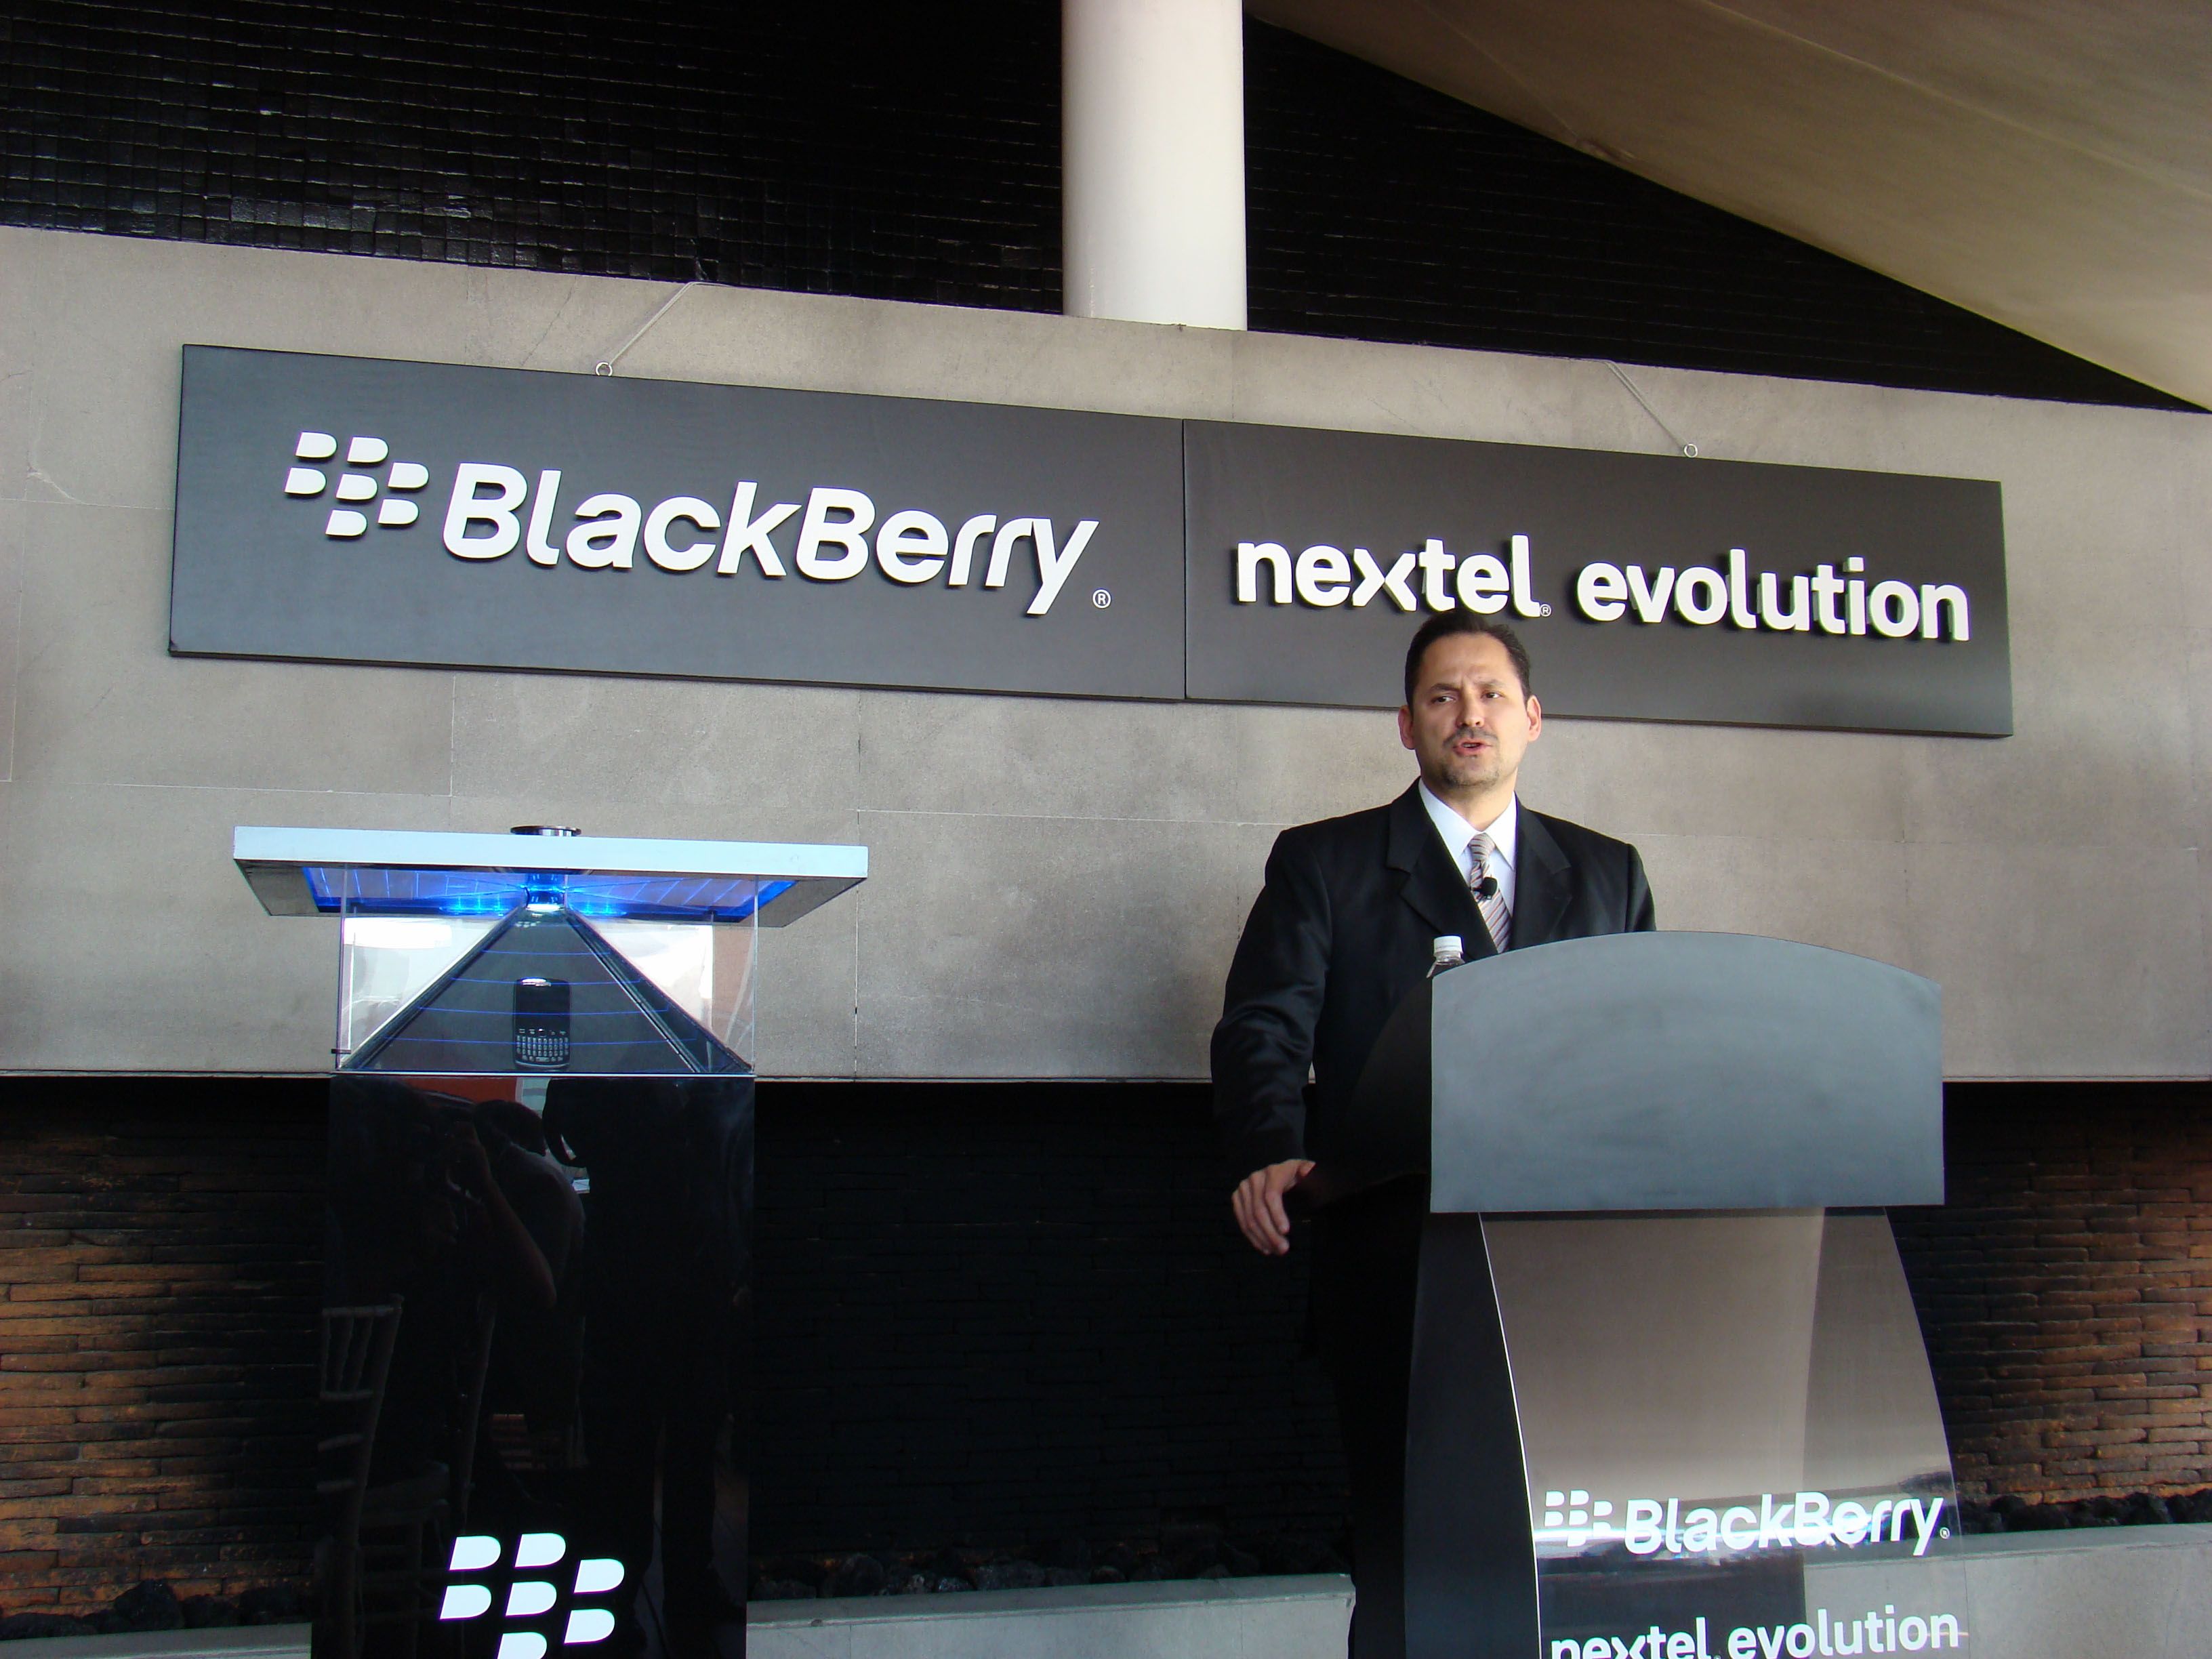 blackberry-nextel-11